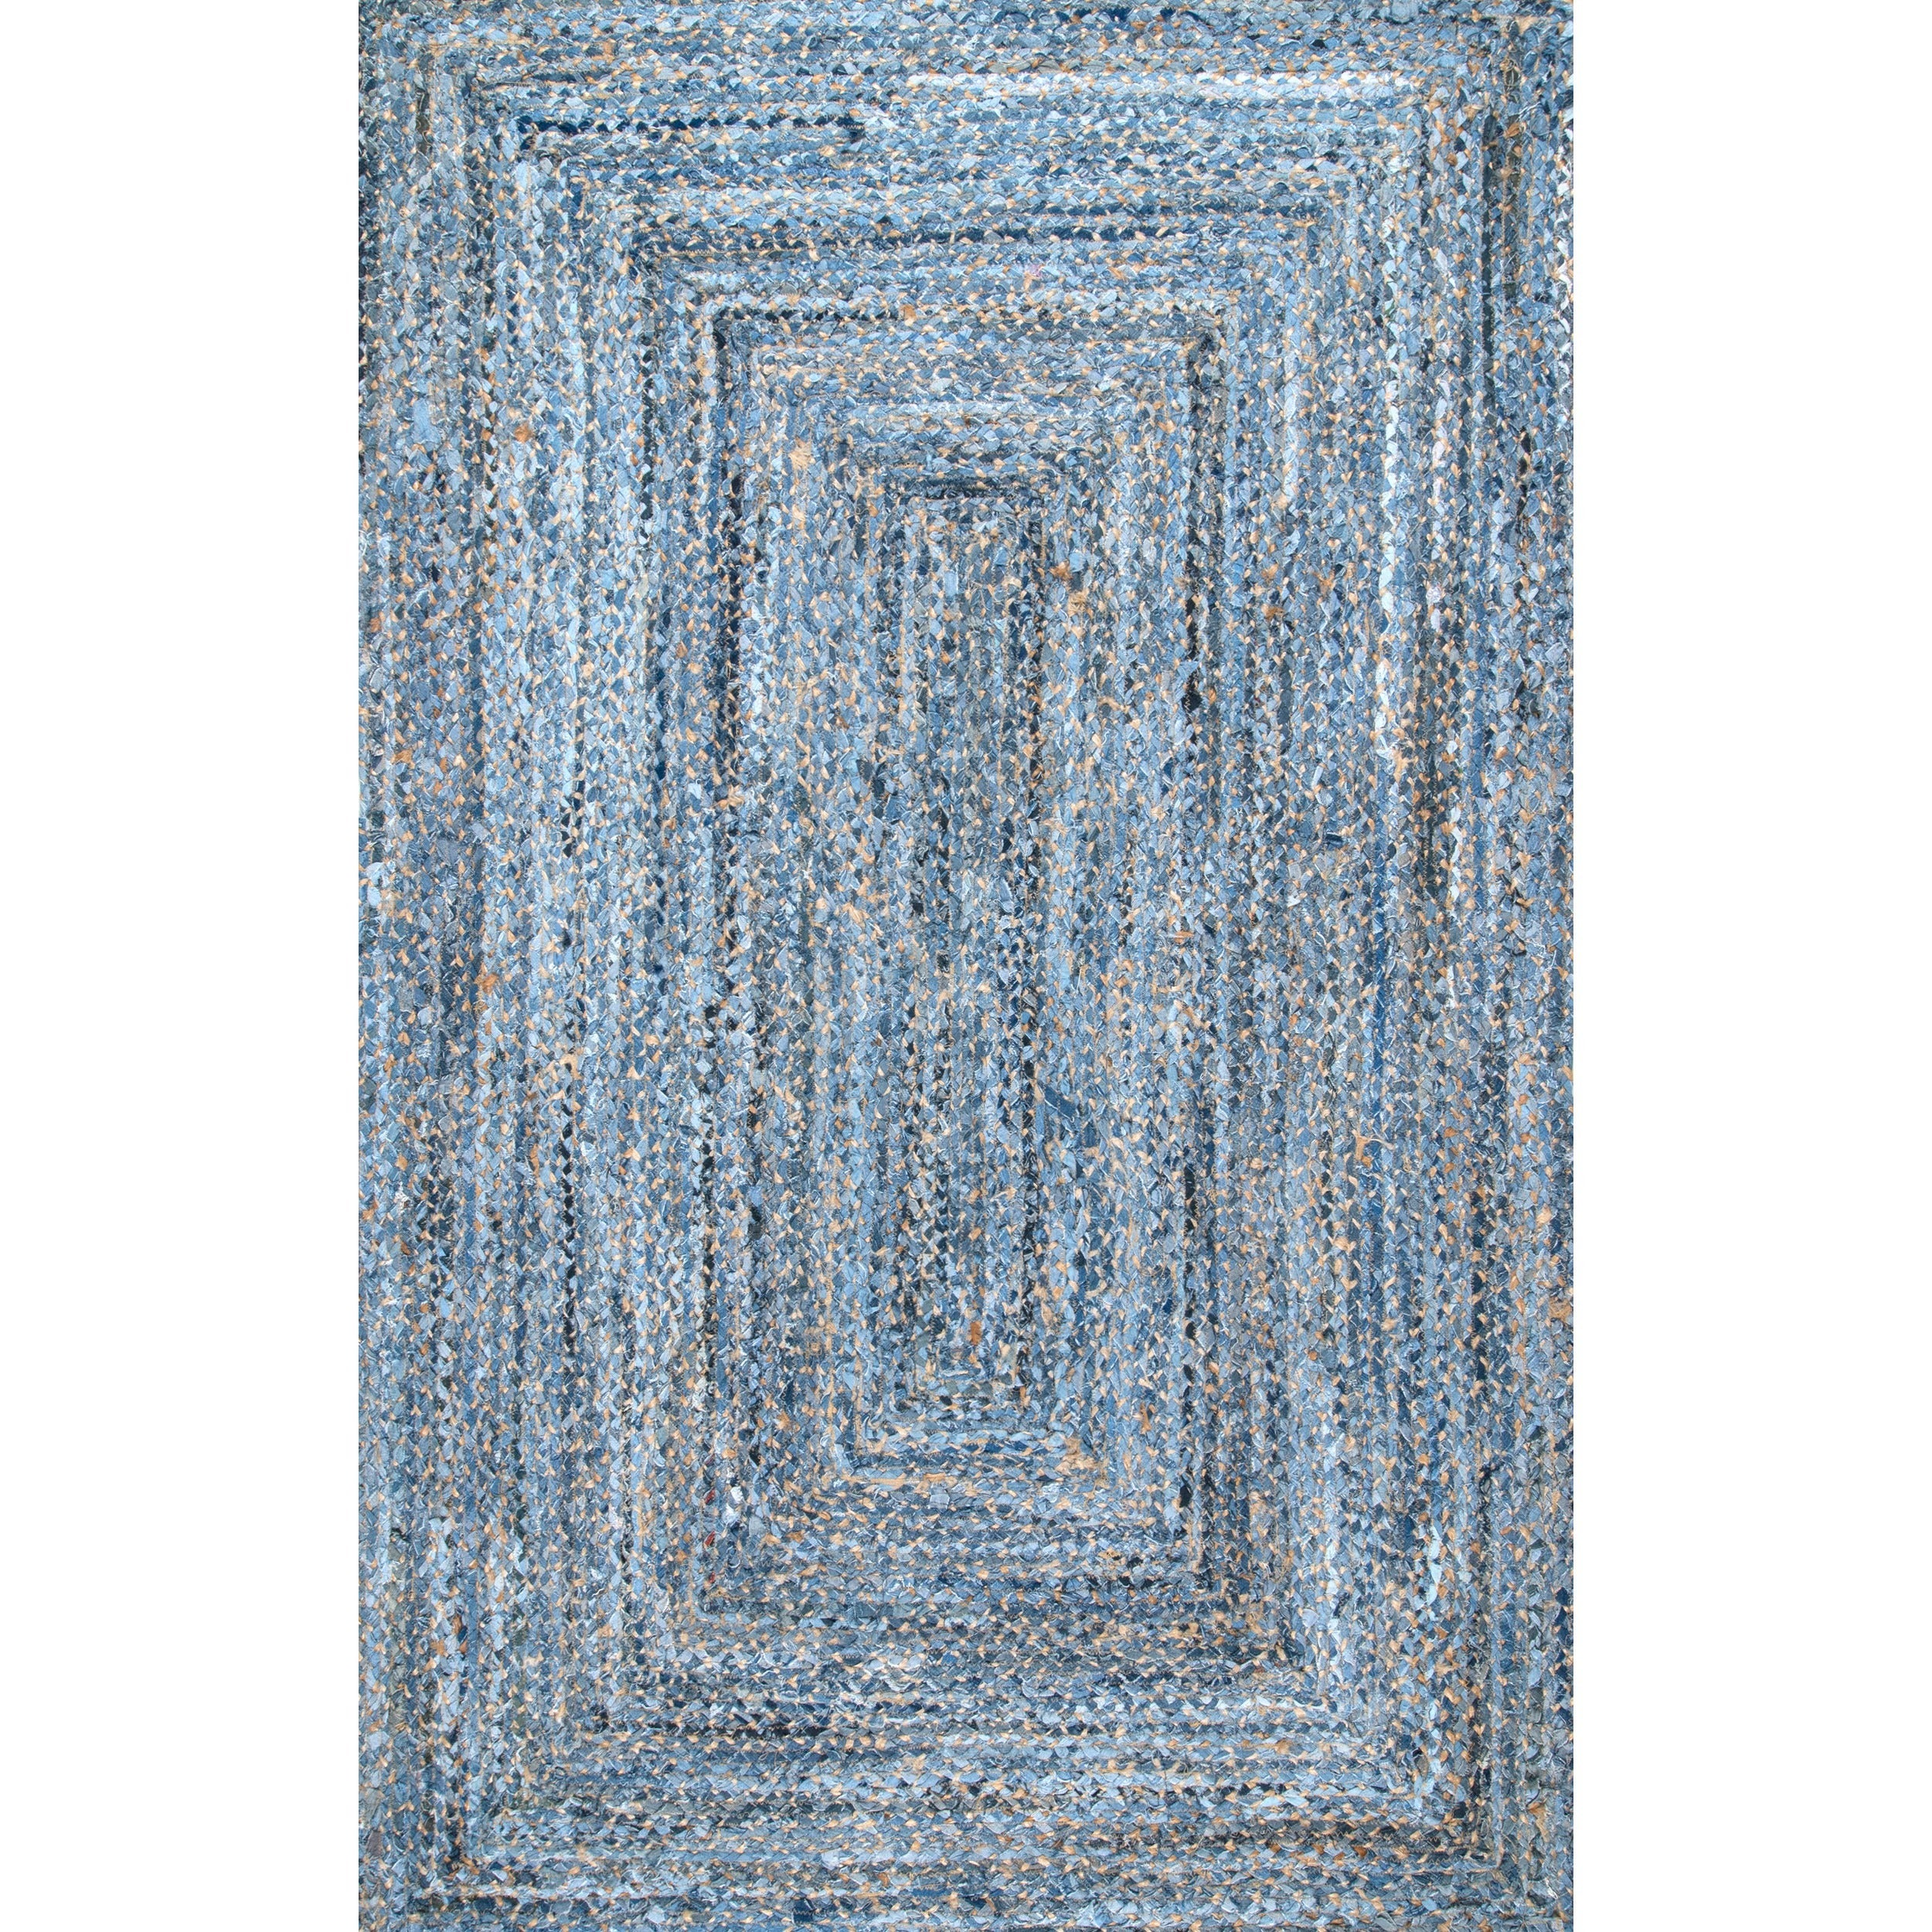 Nuloom Handmade Braided Blue Natural Fiber Jute And Denim Rug 7 6 X 9 Free Shipping Today Com 20839249